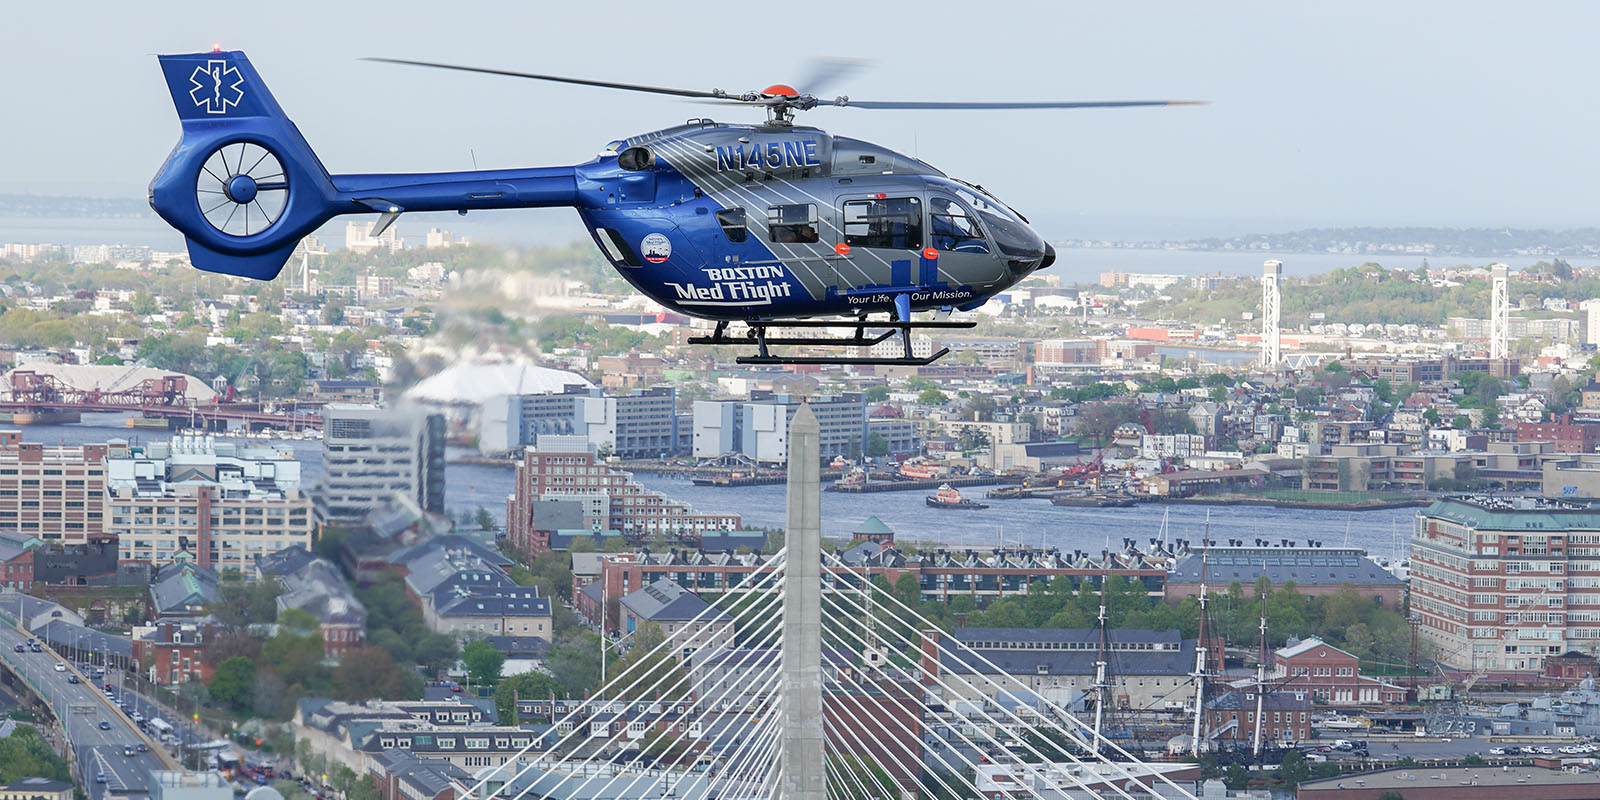 5G Interference: A Helicopter Air Ambulance Perspective